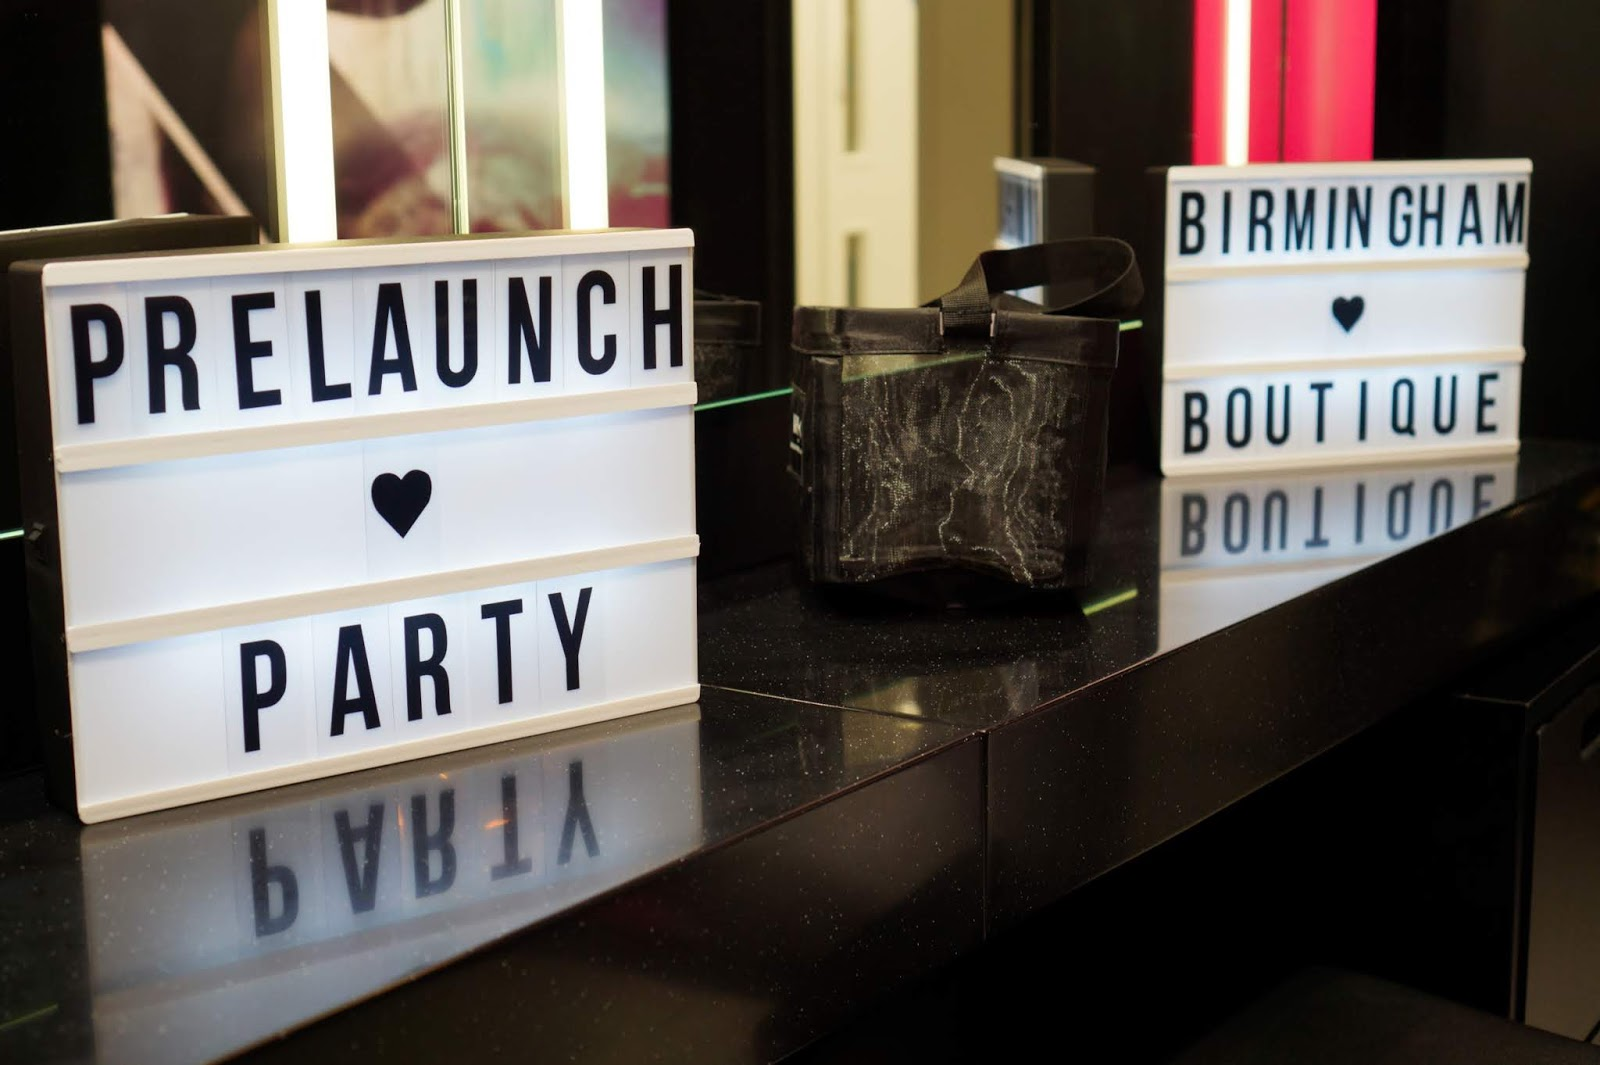 NYX_Birmingham_Bullring_Store_Prelaunch_Party